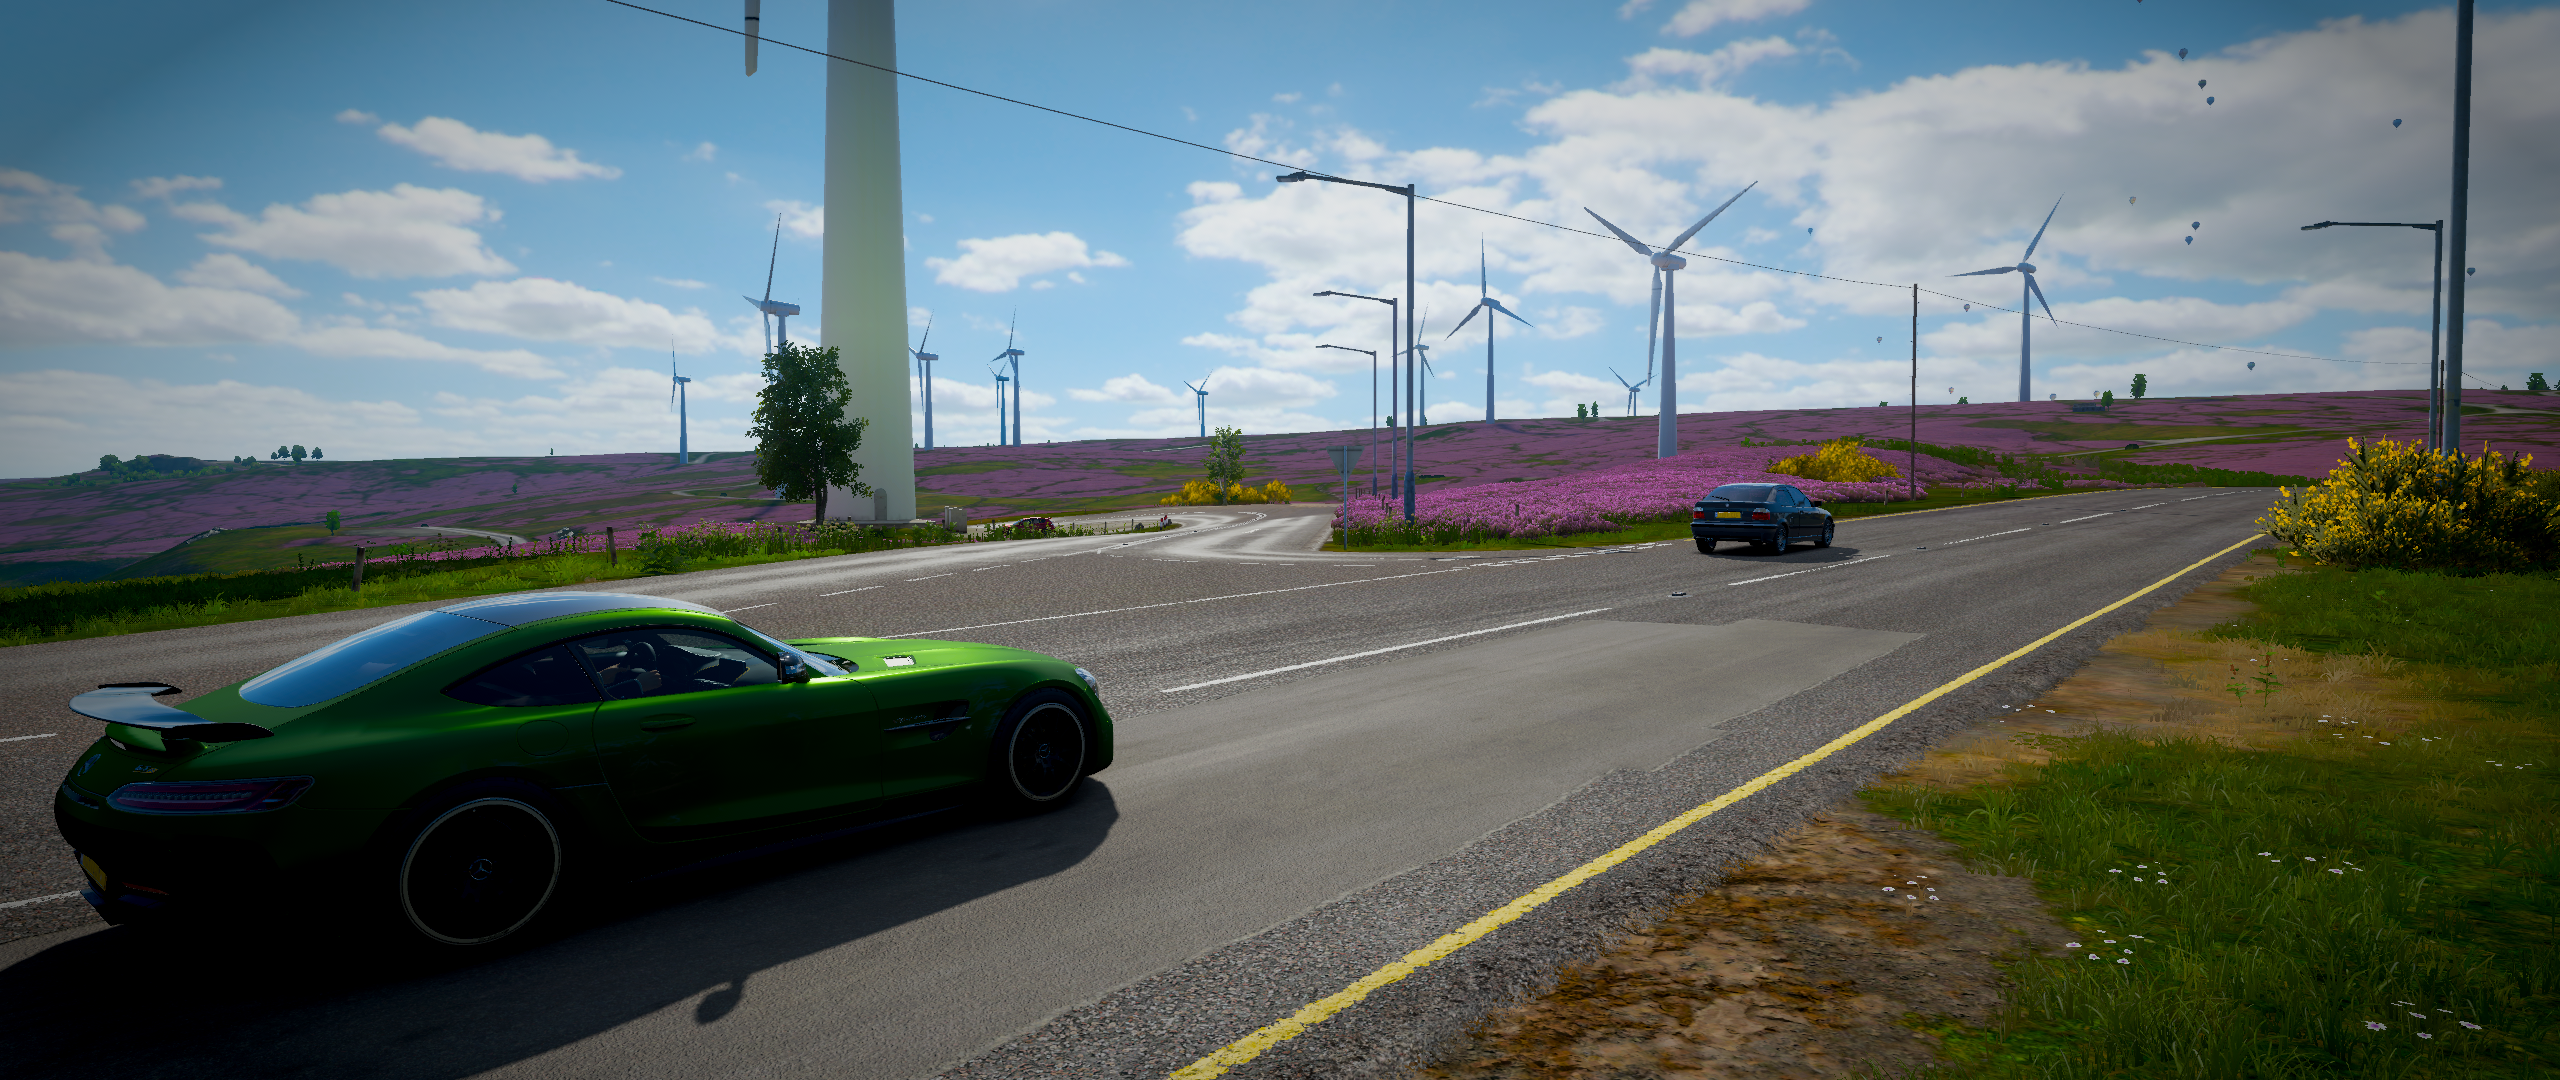 Forza-Horizon-4-Review-02-Beauty-is-Here How to modify and customize radio stations and issues to be aware of in Forza Horizon 4